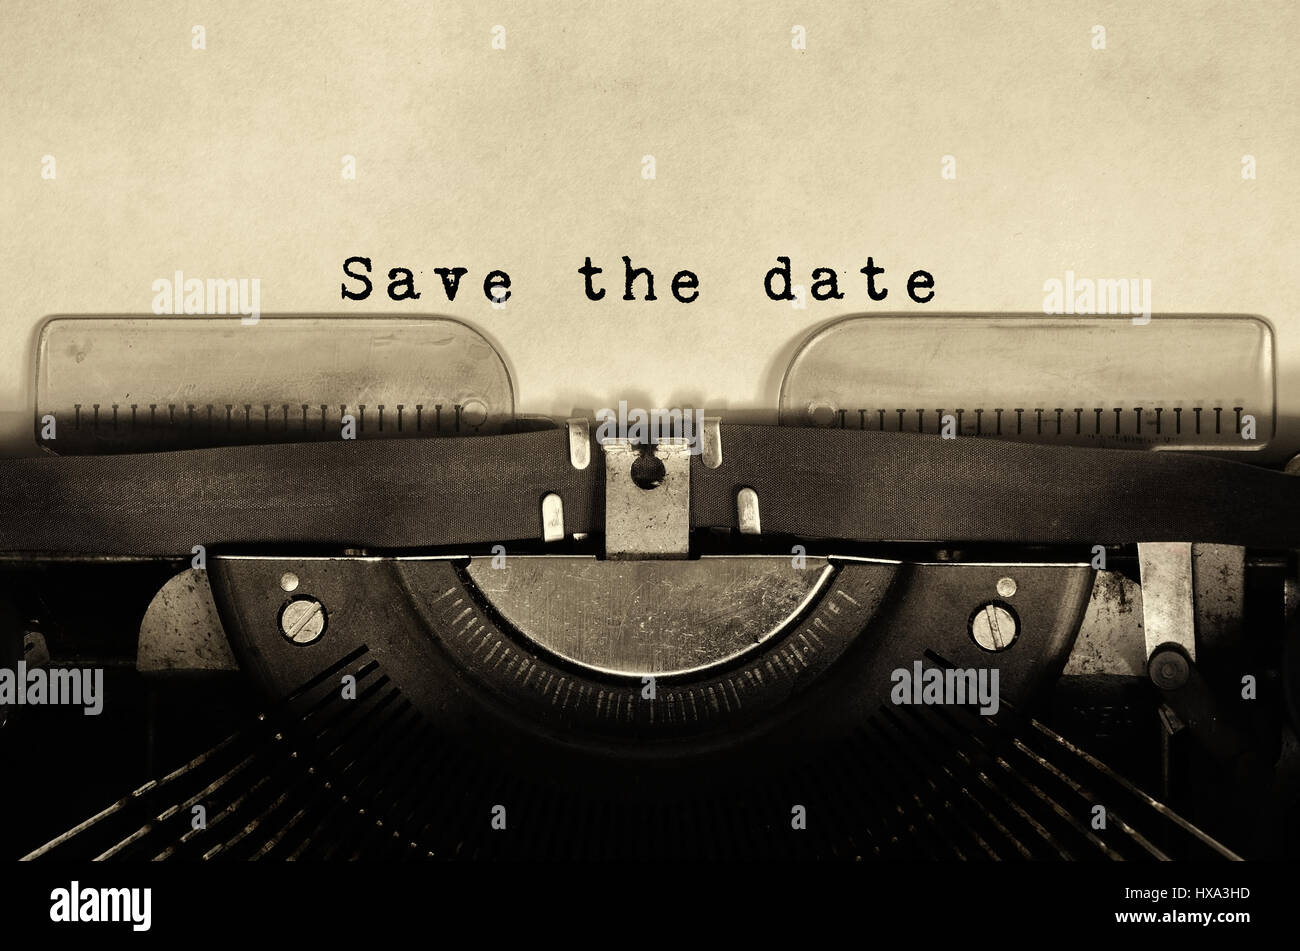 Save the date words typed on vintage typewriter. - Stock Image